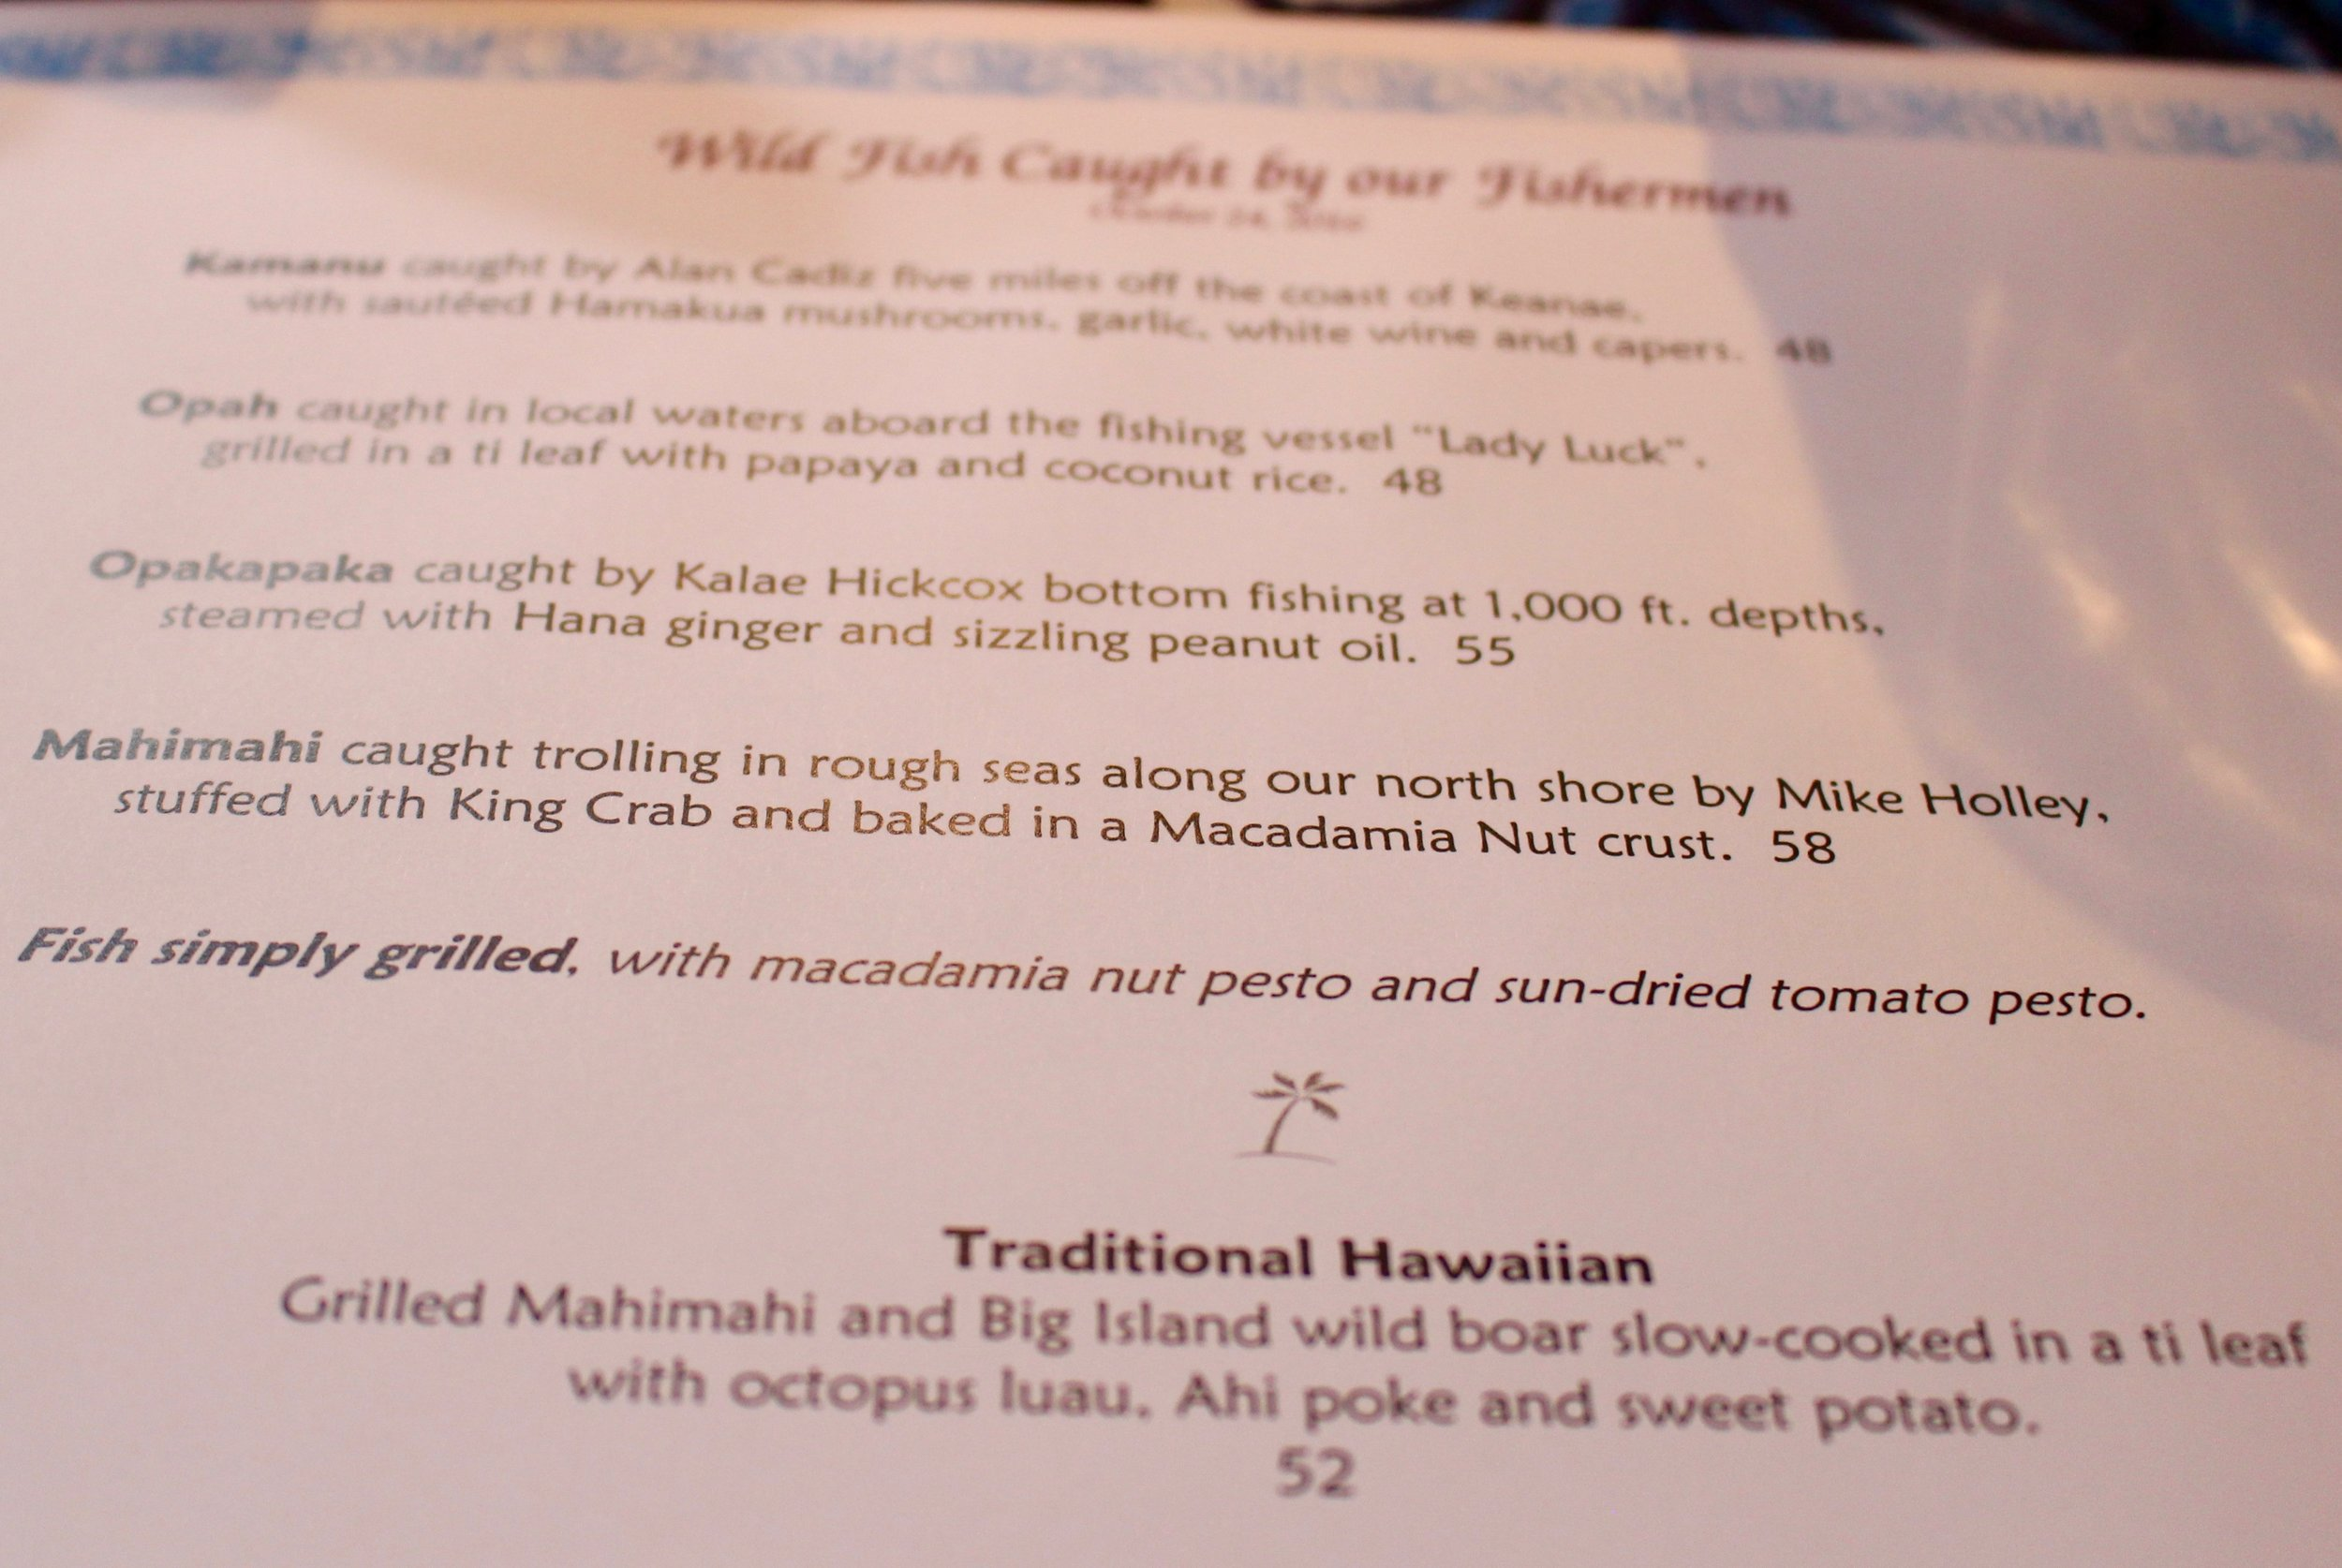 I read this menu with pure excitement, unsure of what I would order.